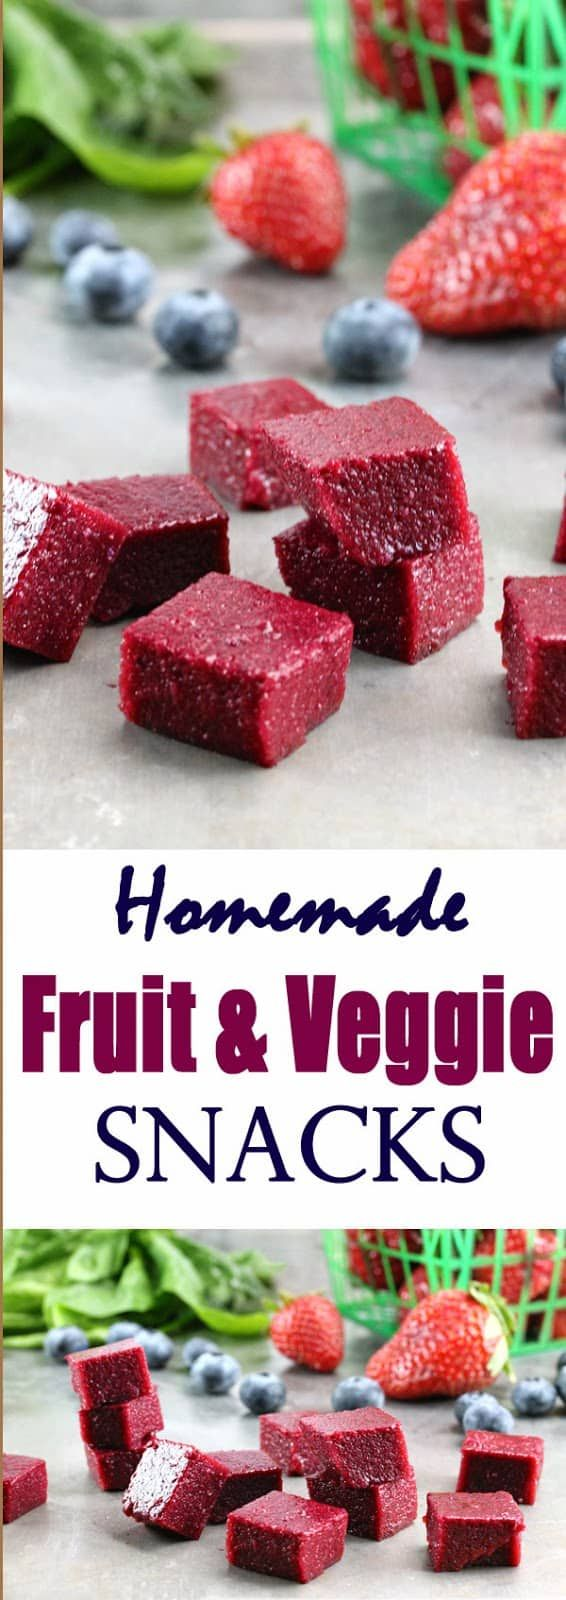 Homemade Fruit and Vegetable Snacks | Recipe (With images ...